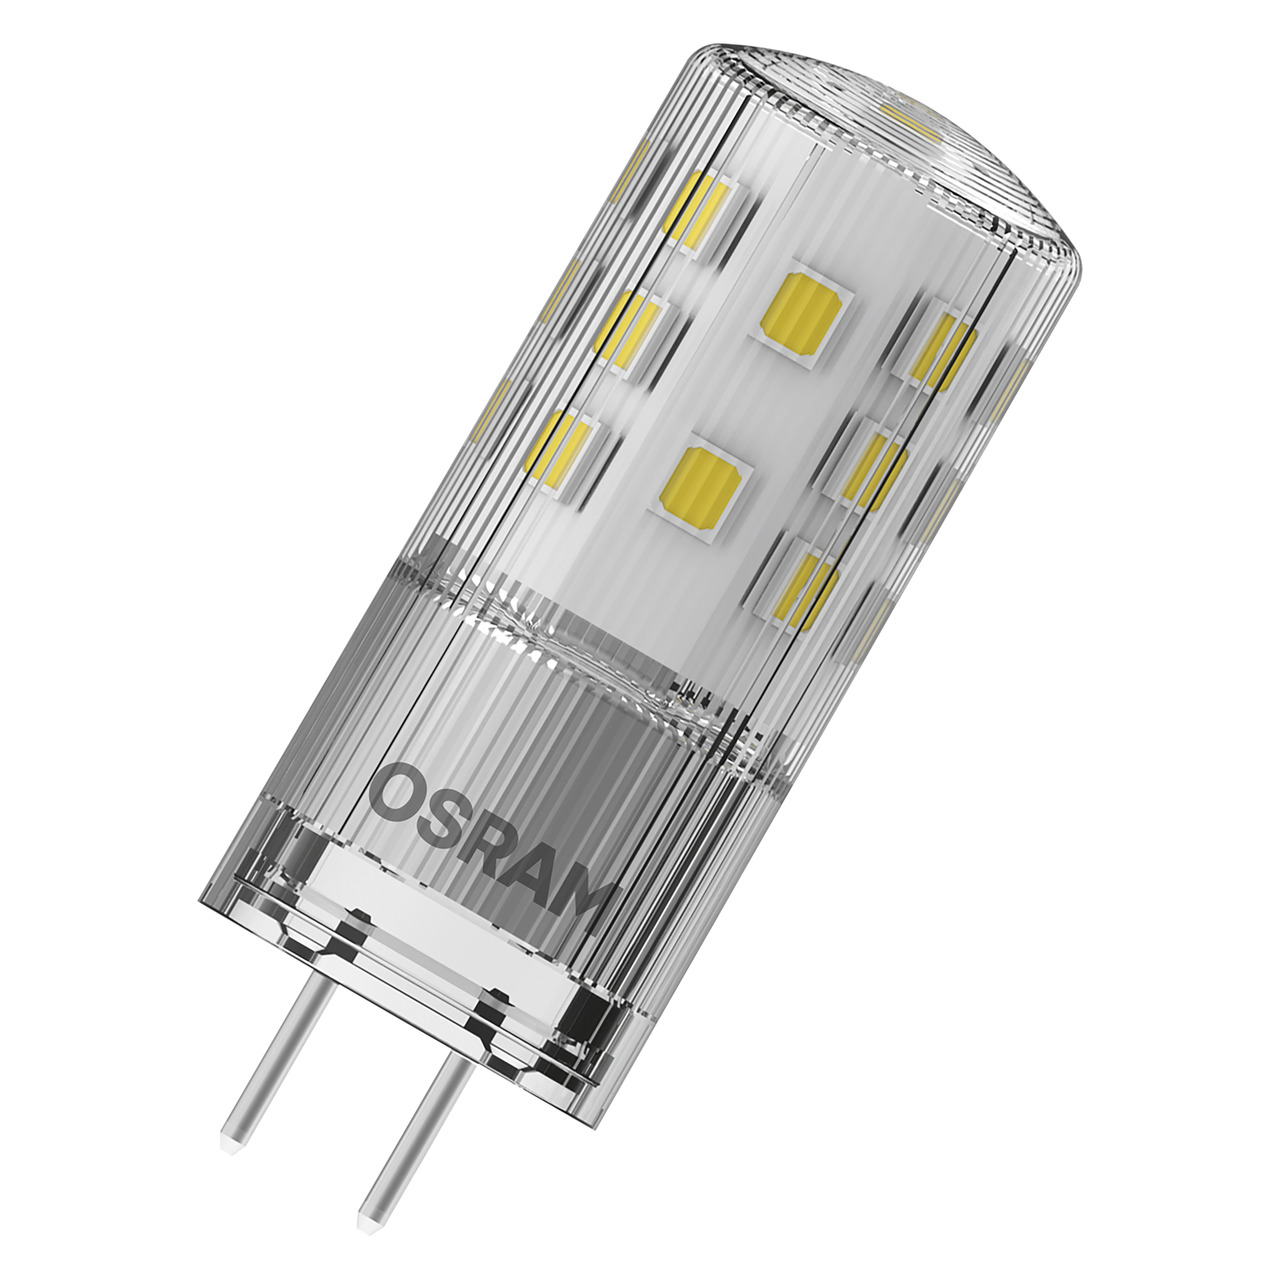 OSRAM 3-6-W-LED-Lampe T18- GY6-35- 400 lm- warmweiss- 320- 12 V- dimmbar